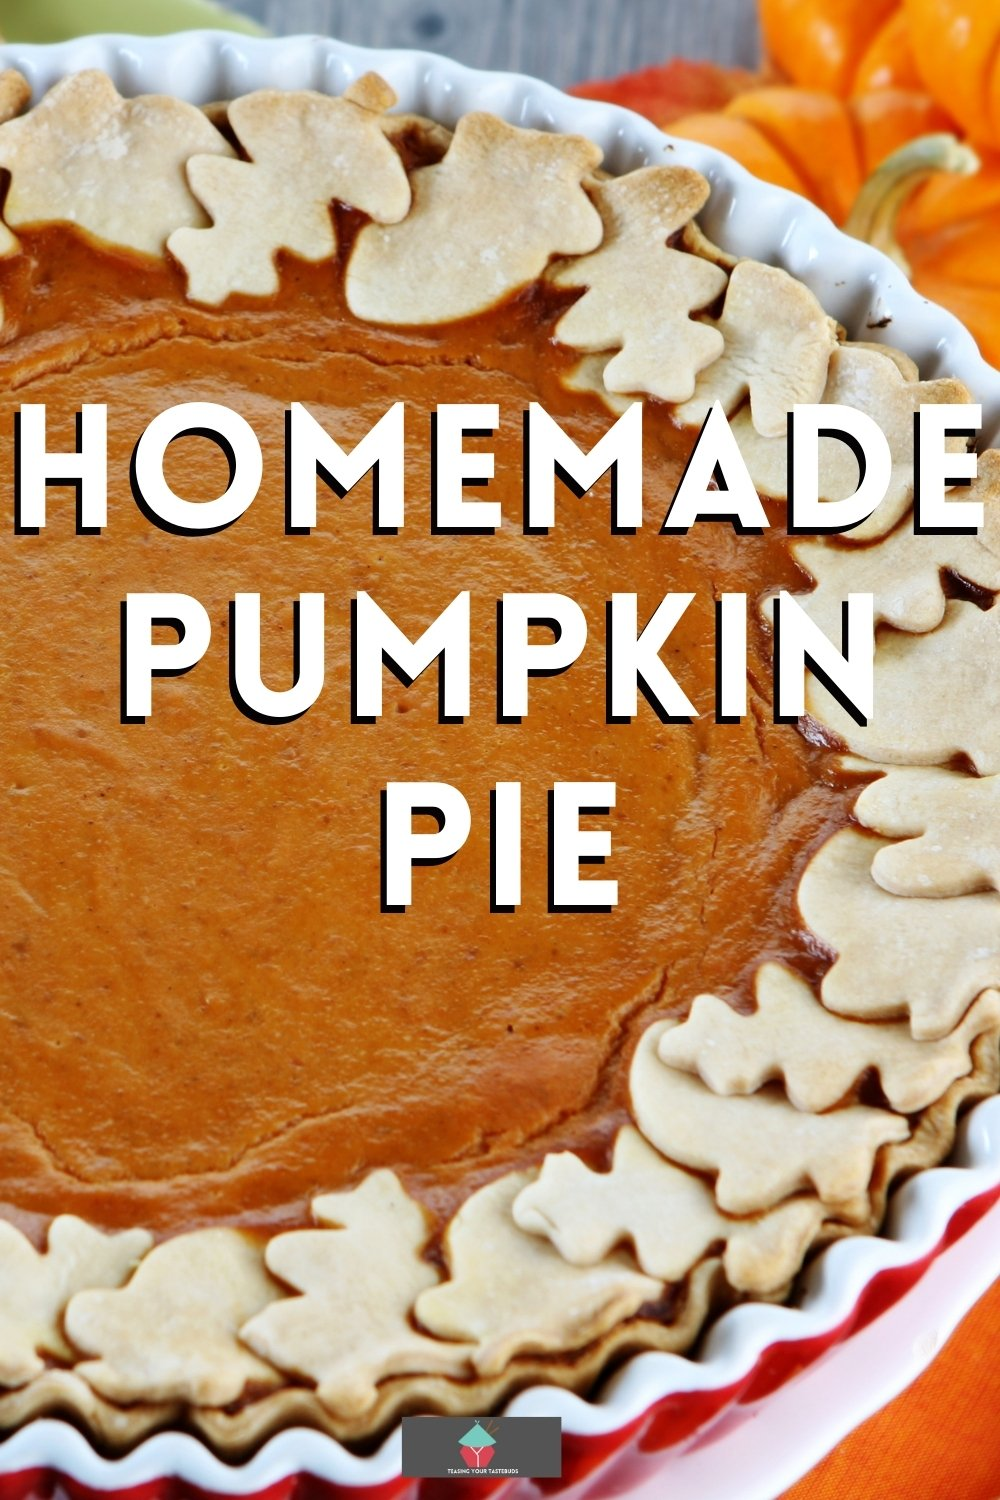 Homemade Pumpkin Pie, an easy homemade recipe with a buttery pie crust and a sweet creamy spiced pumpkin filling! Perfect for Thanksgiving and Fall.